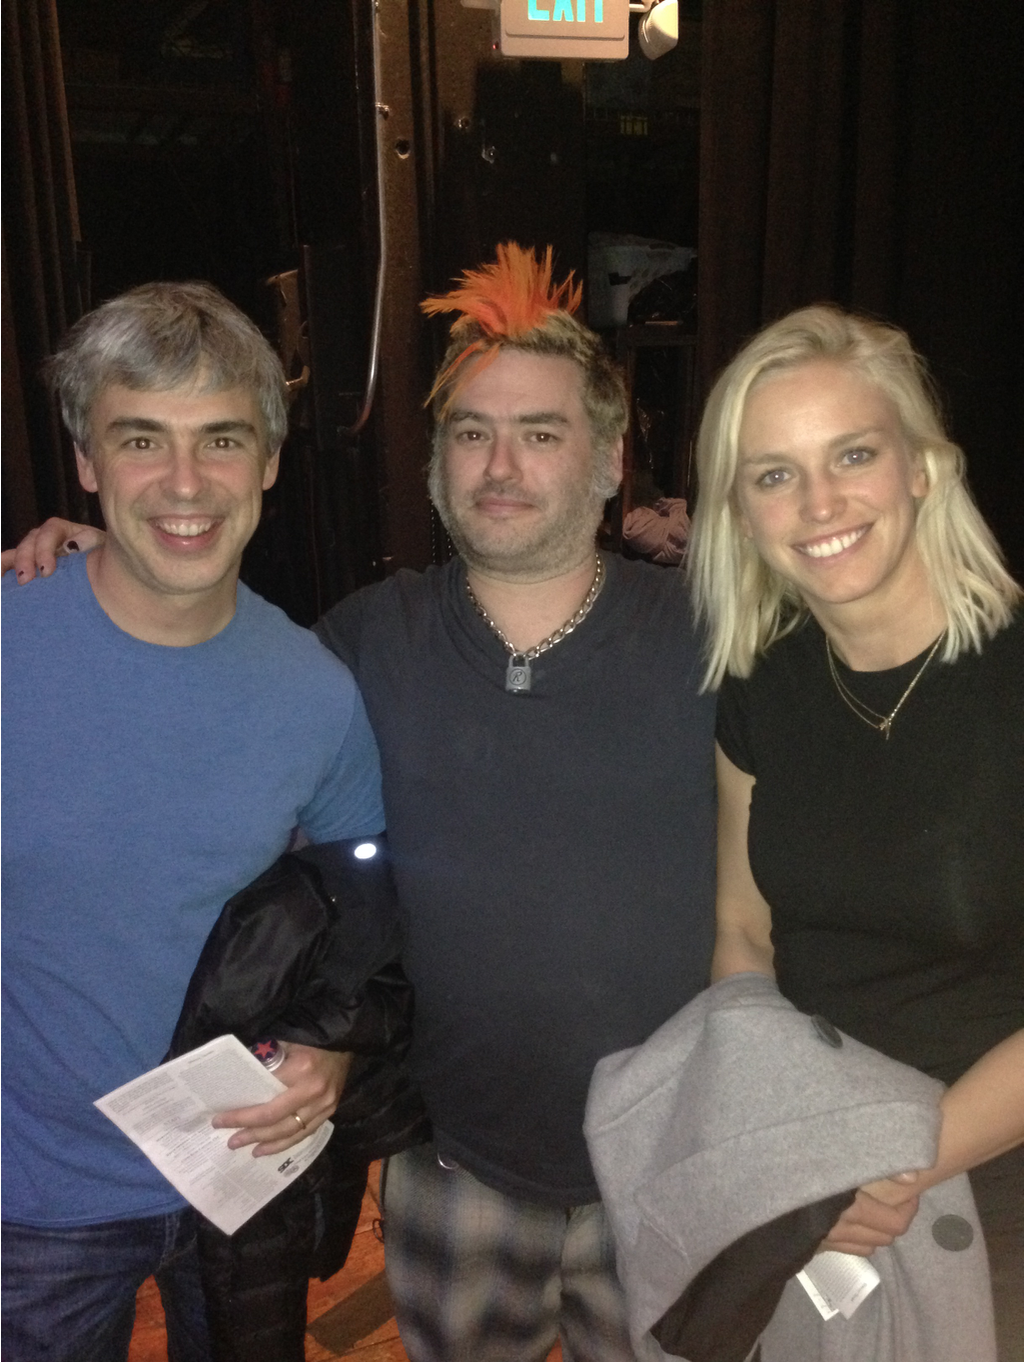 Me and Larry Page and Lucinda Southworth. If you don't know who they are.... Google them.